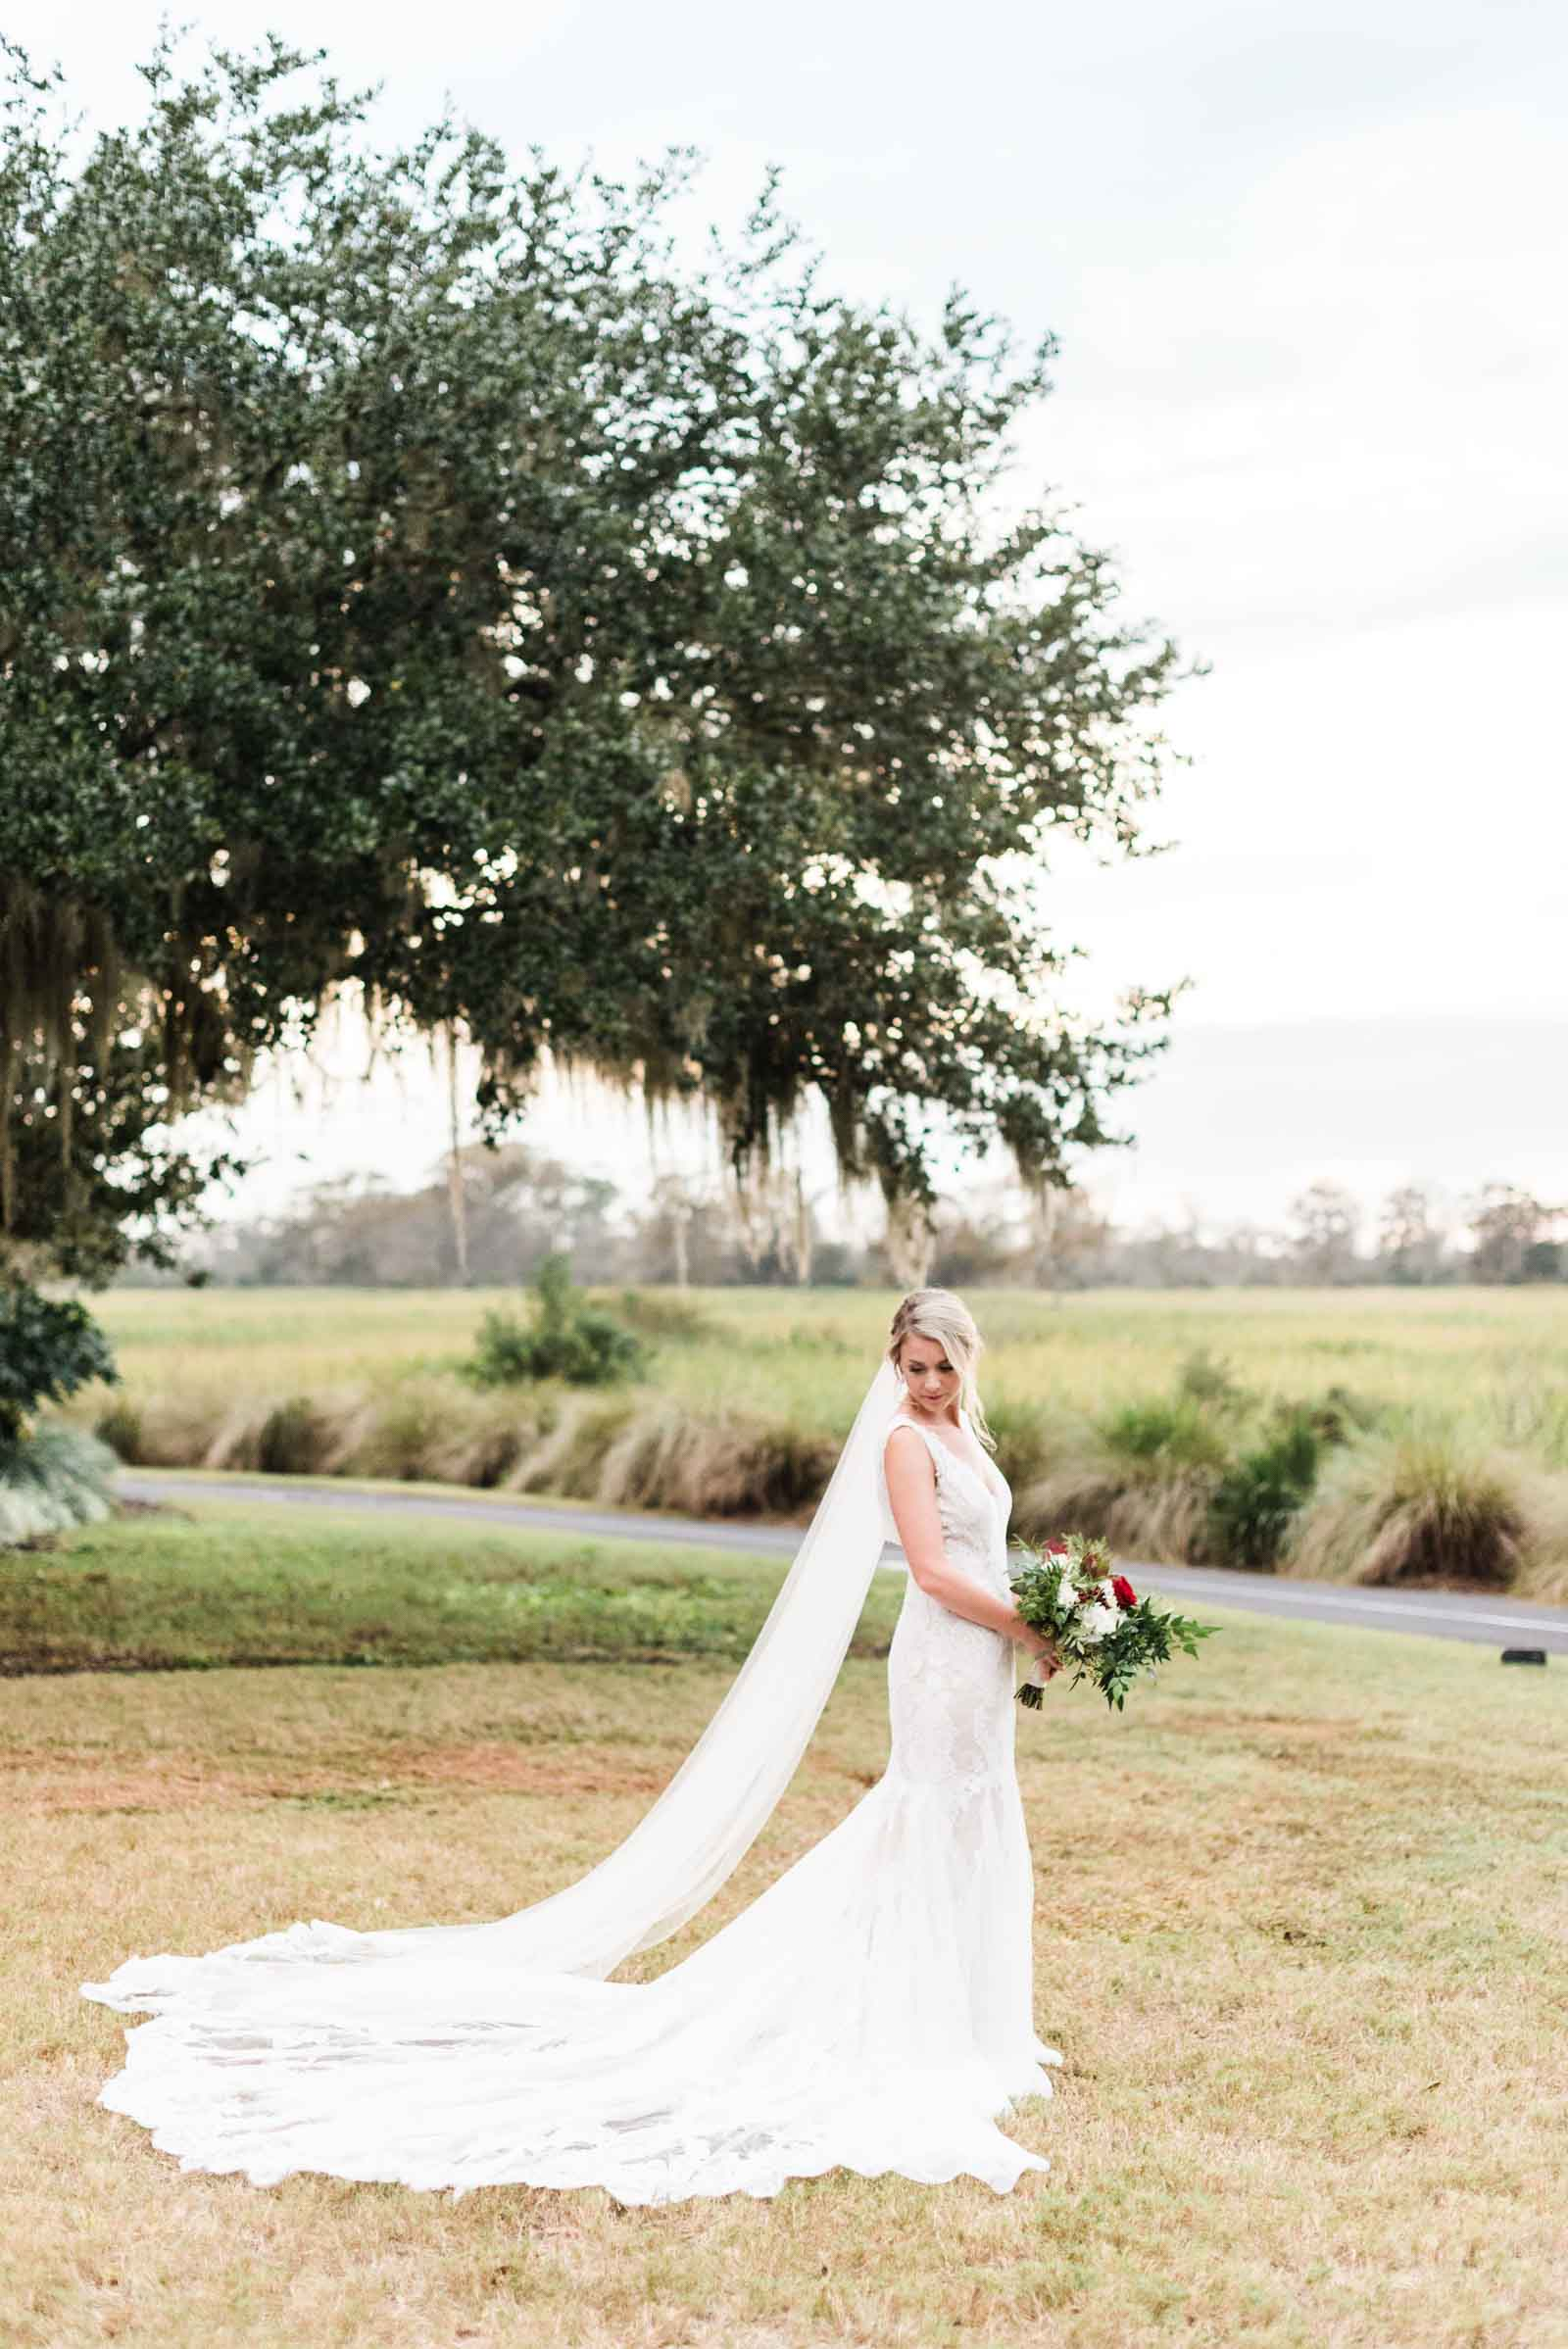 Wedding at Heritage Plantation in Pawley's Island_Markie Walden Photo-49.jpg